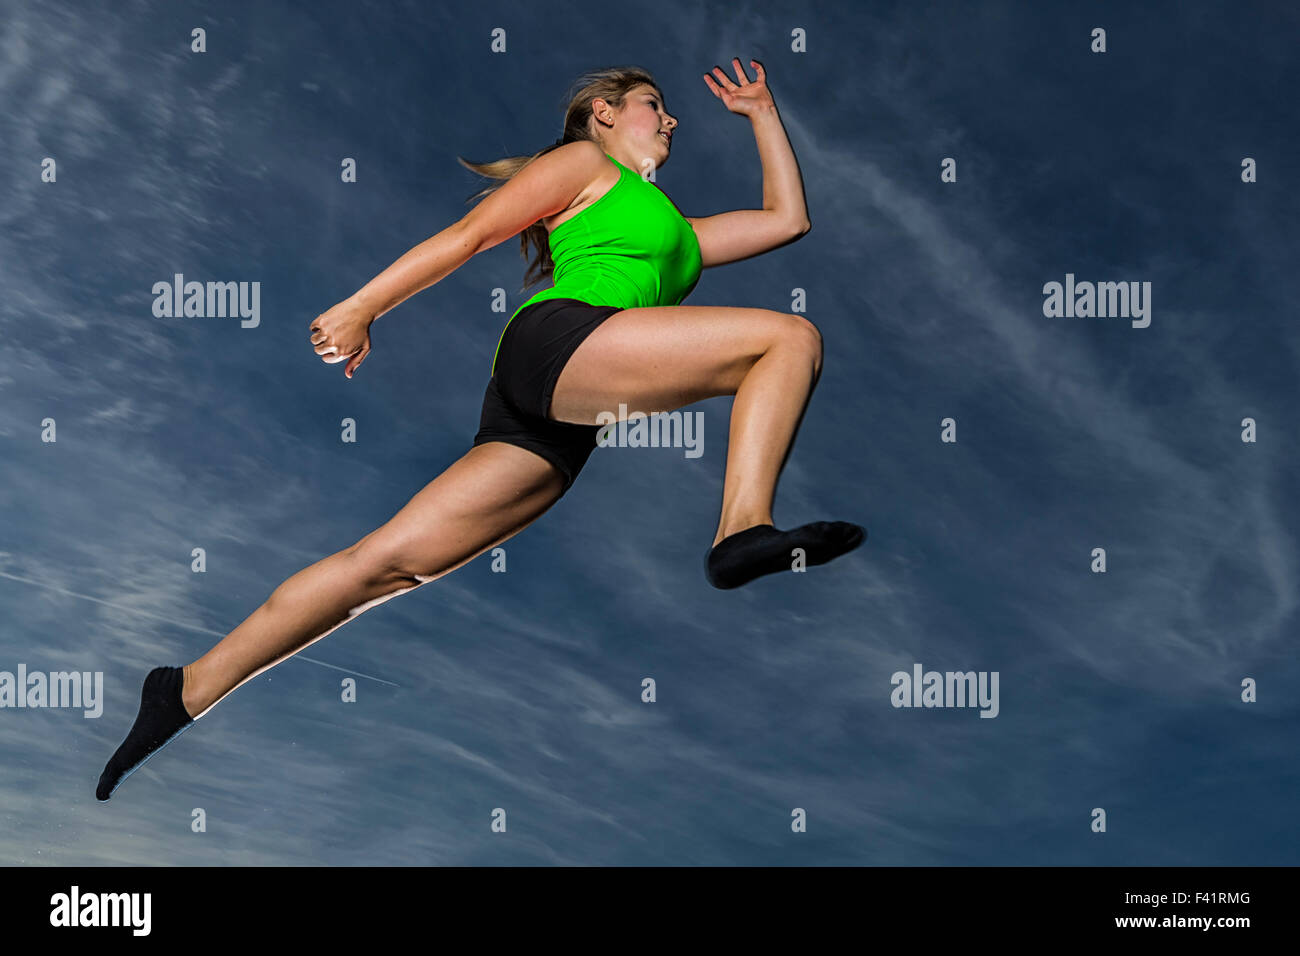 Young woman, 18 years old, leaping, against the evening sky - Stock Image